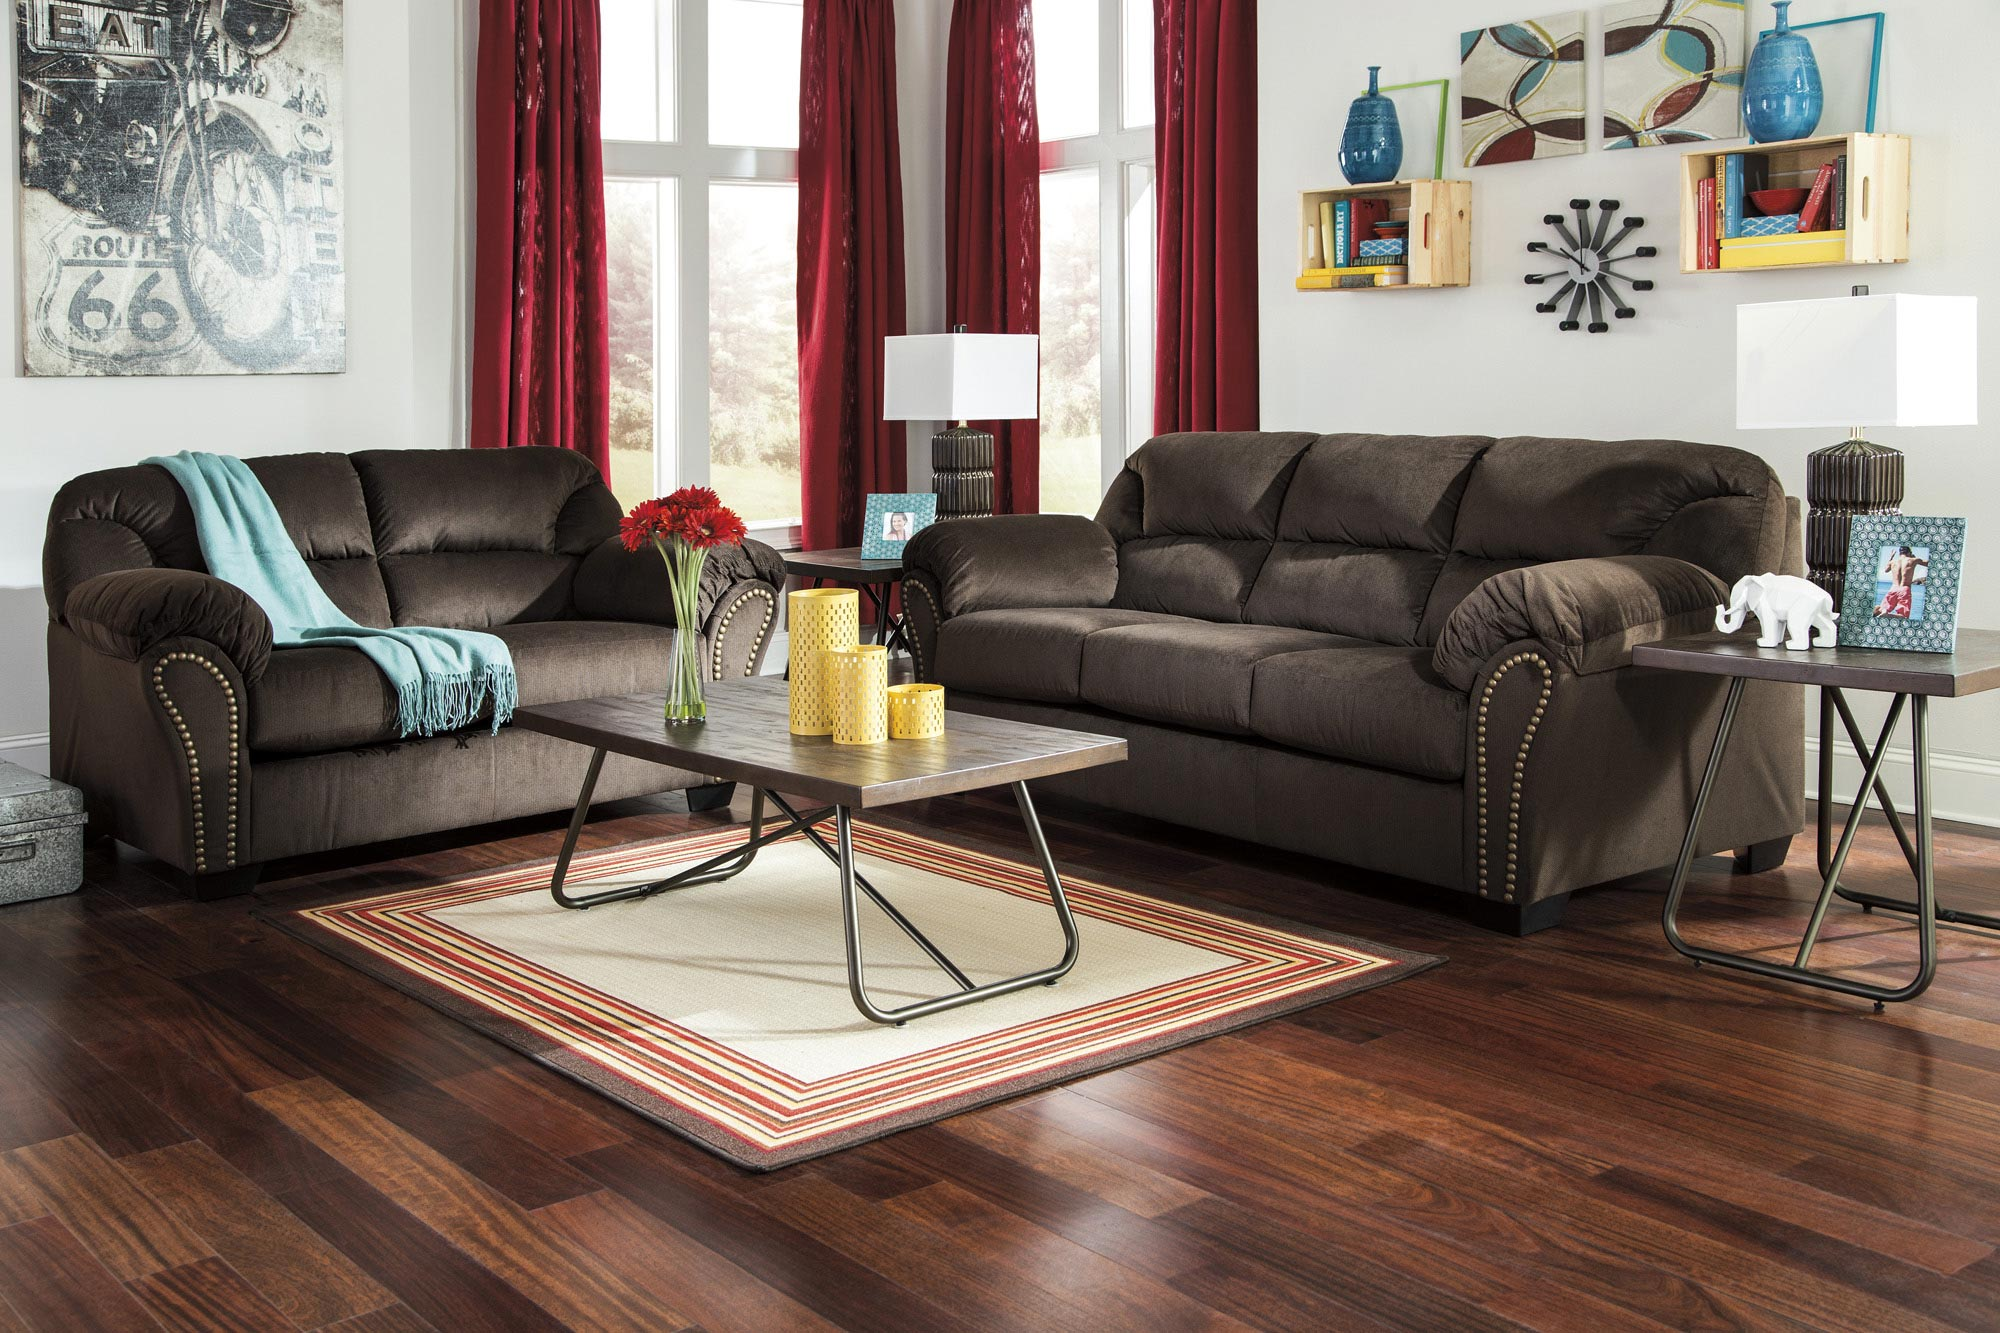 Kinlock Brown Sofa Set Brown Sofa Set Couch And Loveseat Set Quality Living Room Furniture